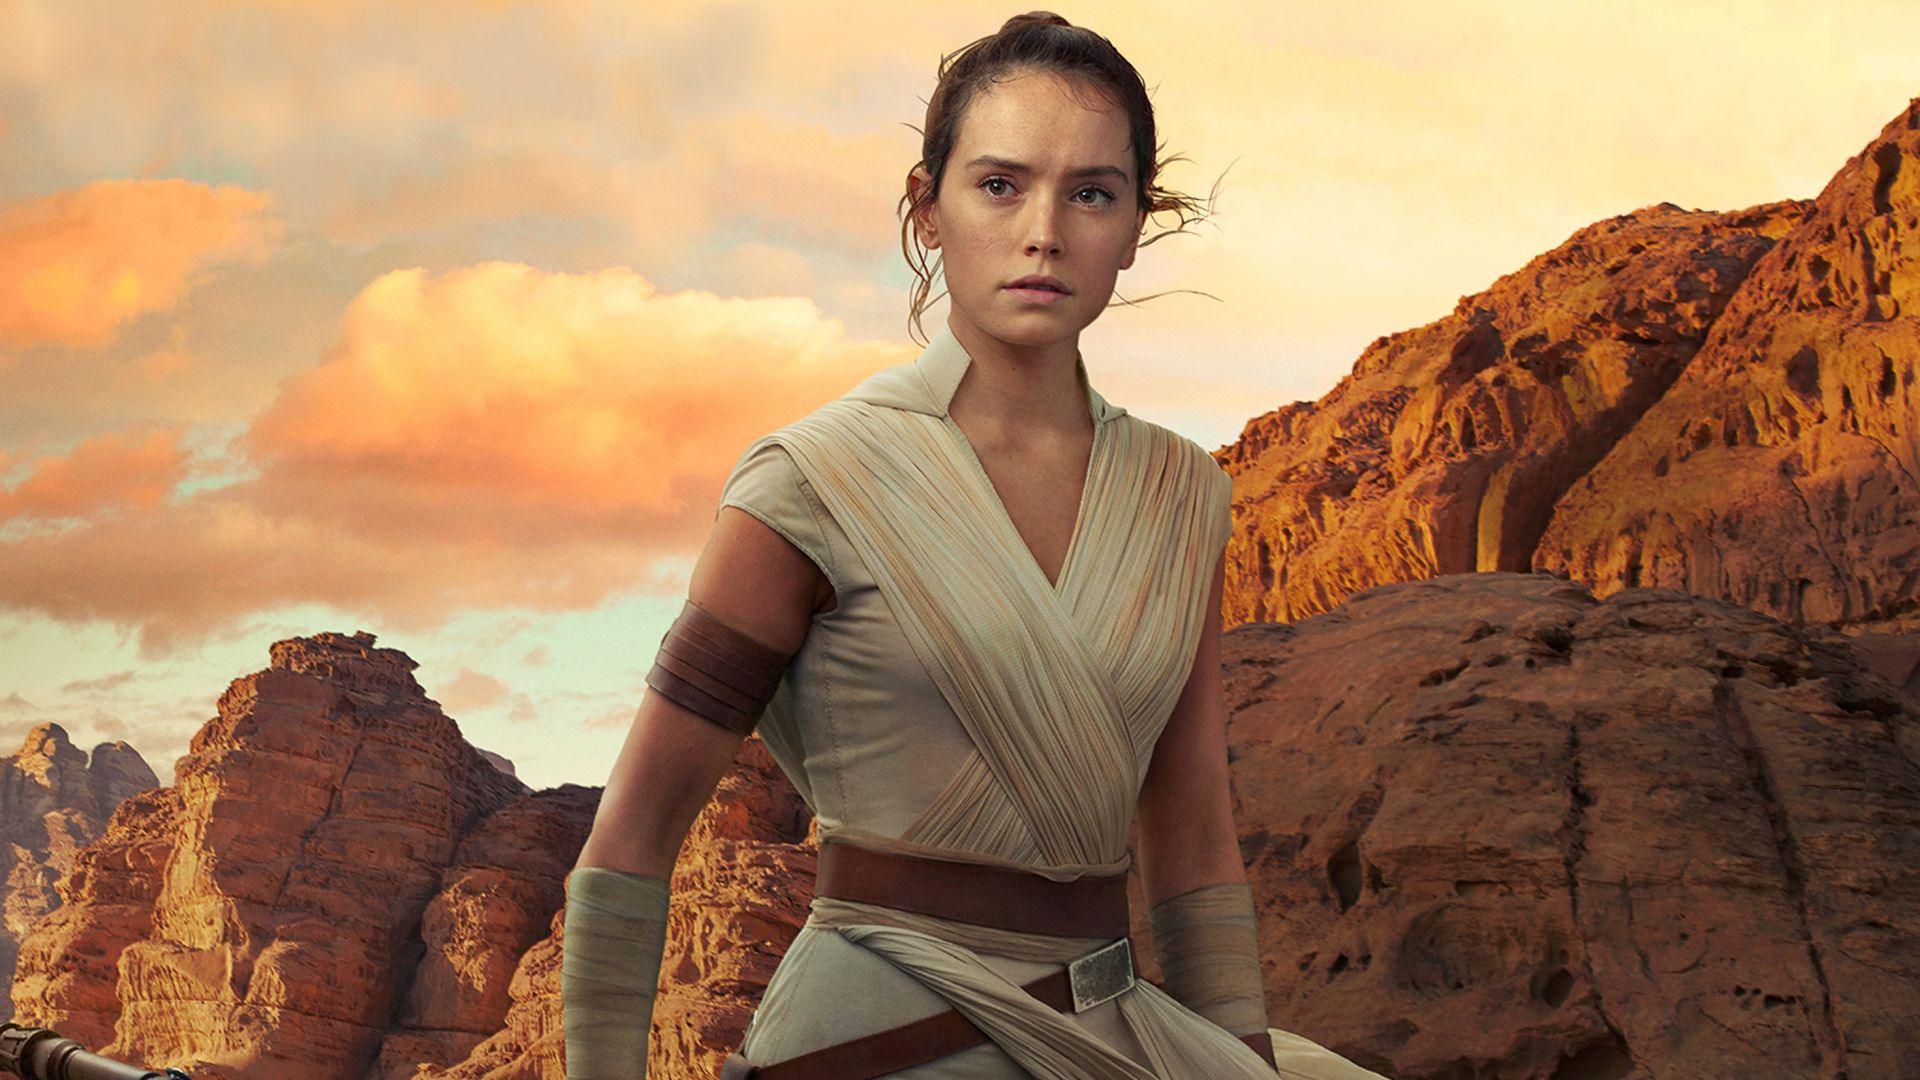 Star Wars The Rise of Skywalker Rey Photo Daisy Ridley Wallpaper 1080p